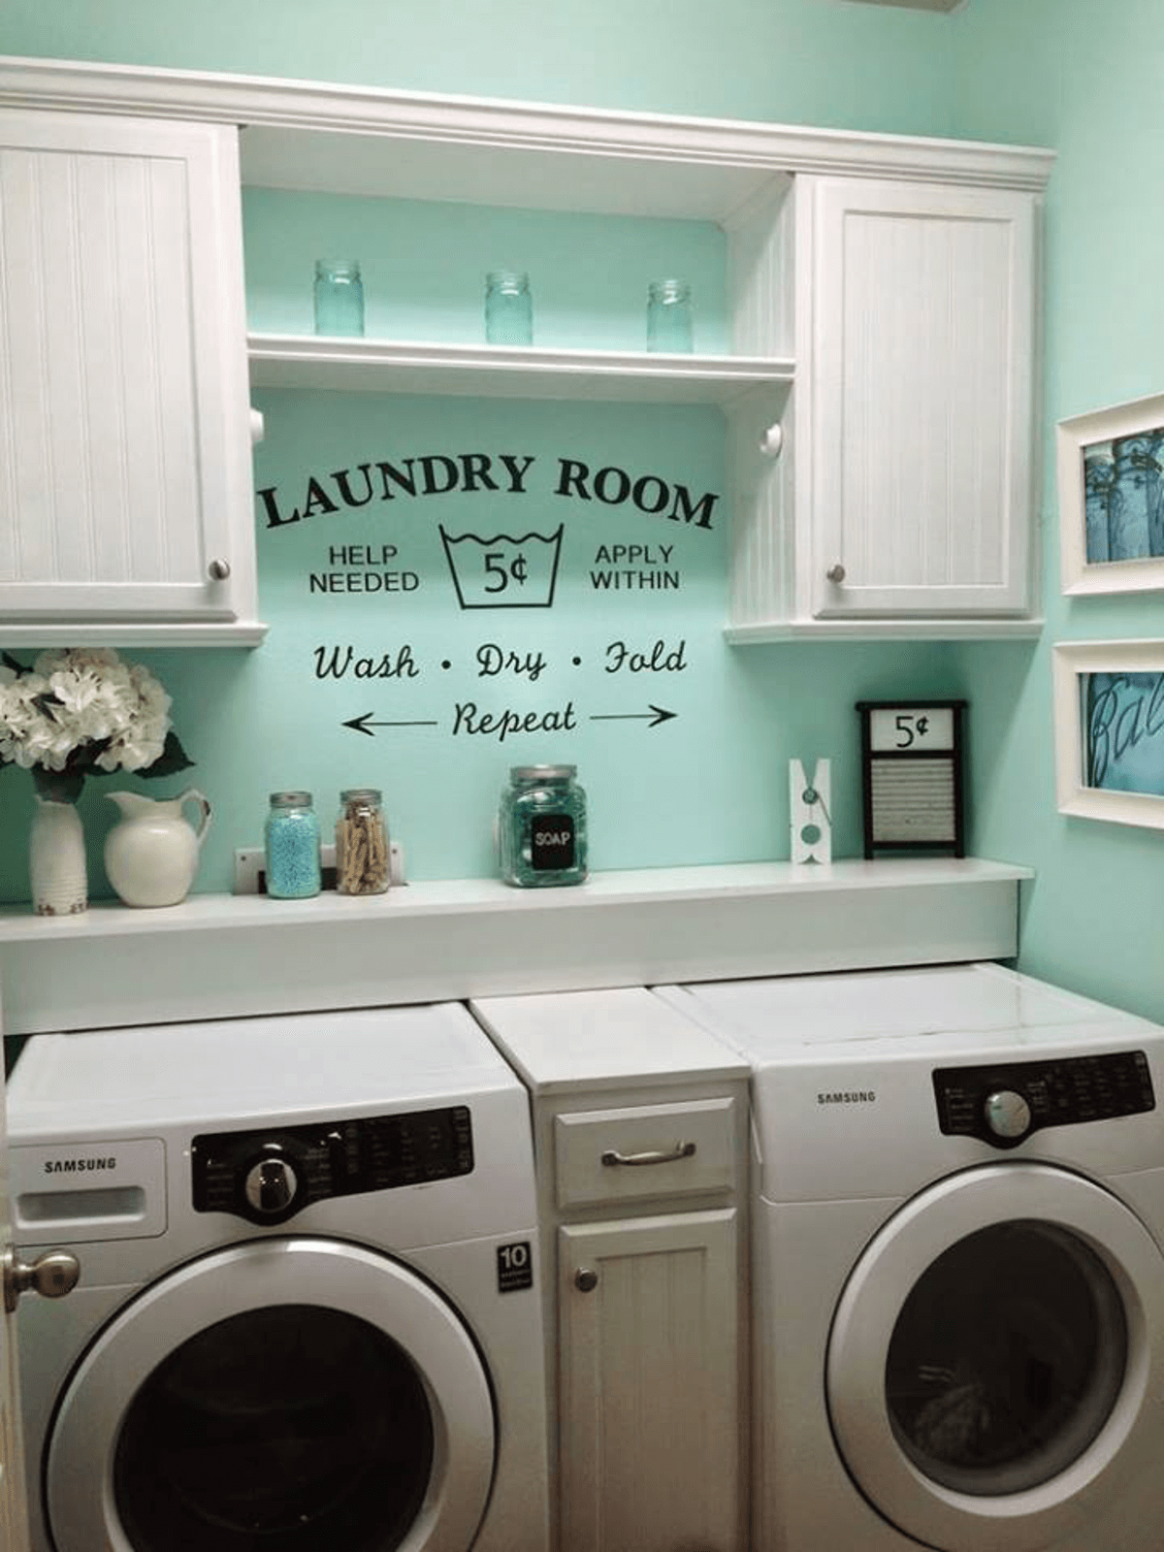 10 Best Small Laundry Room Design Ideas for 10 - laundry room ideas small